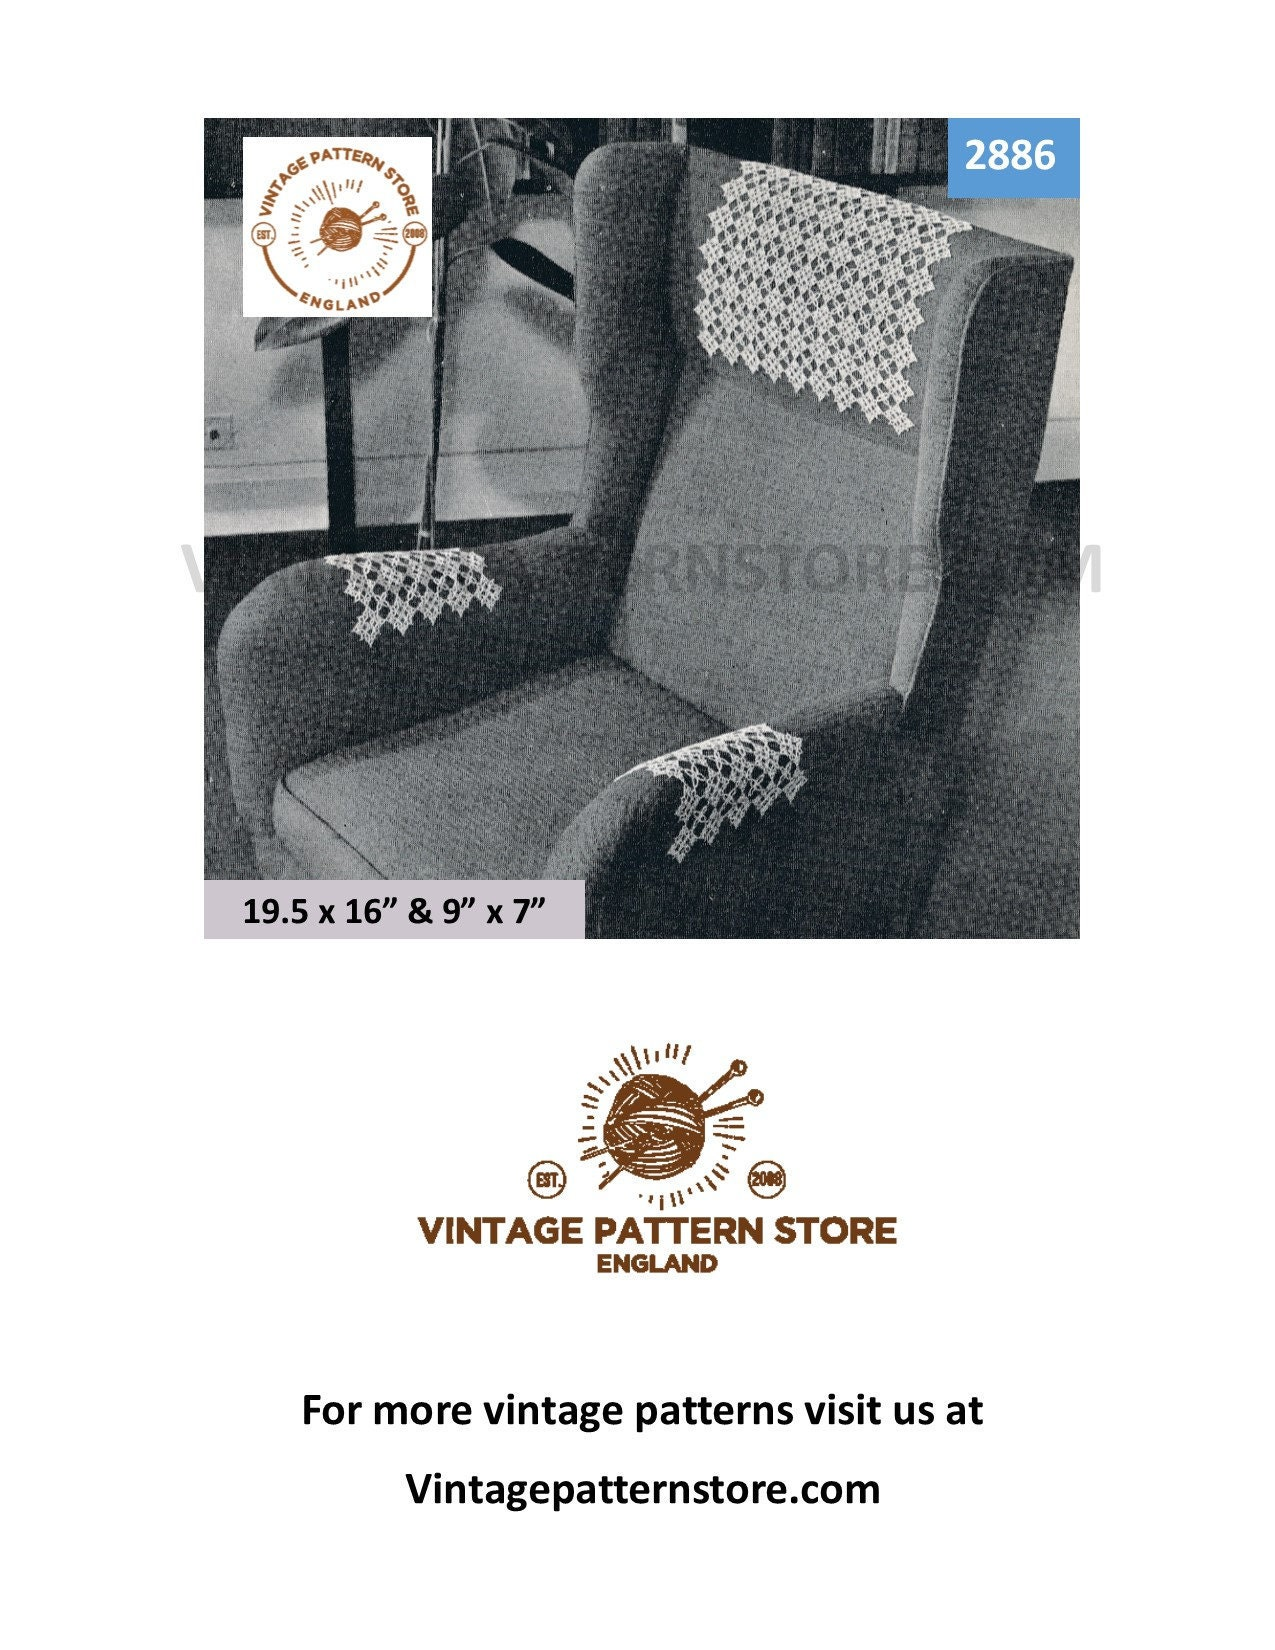 30s Vintage Tatted Lace Settee Sofa Chair Back And Arm Rest